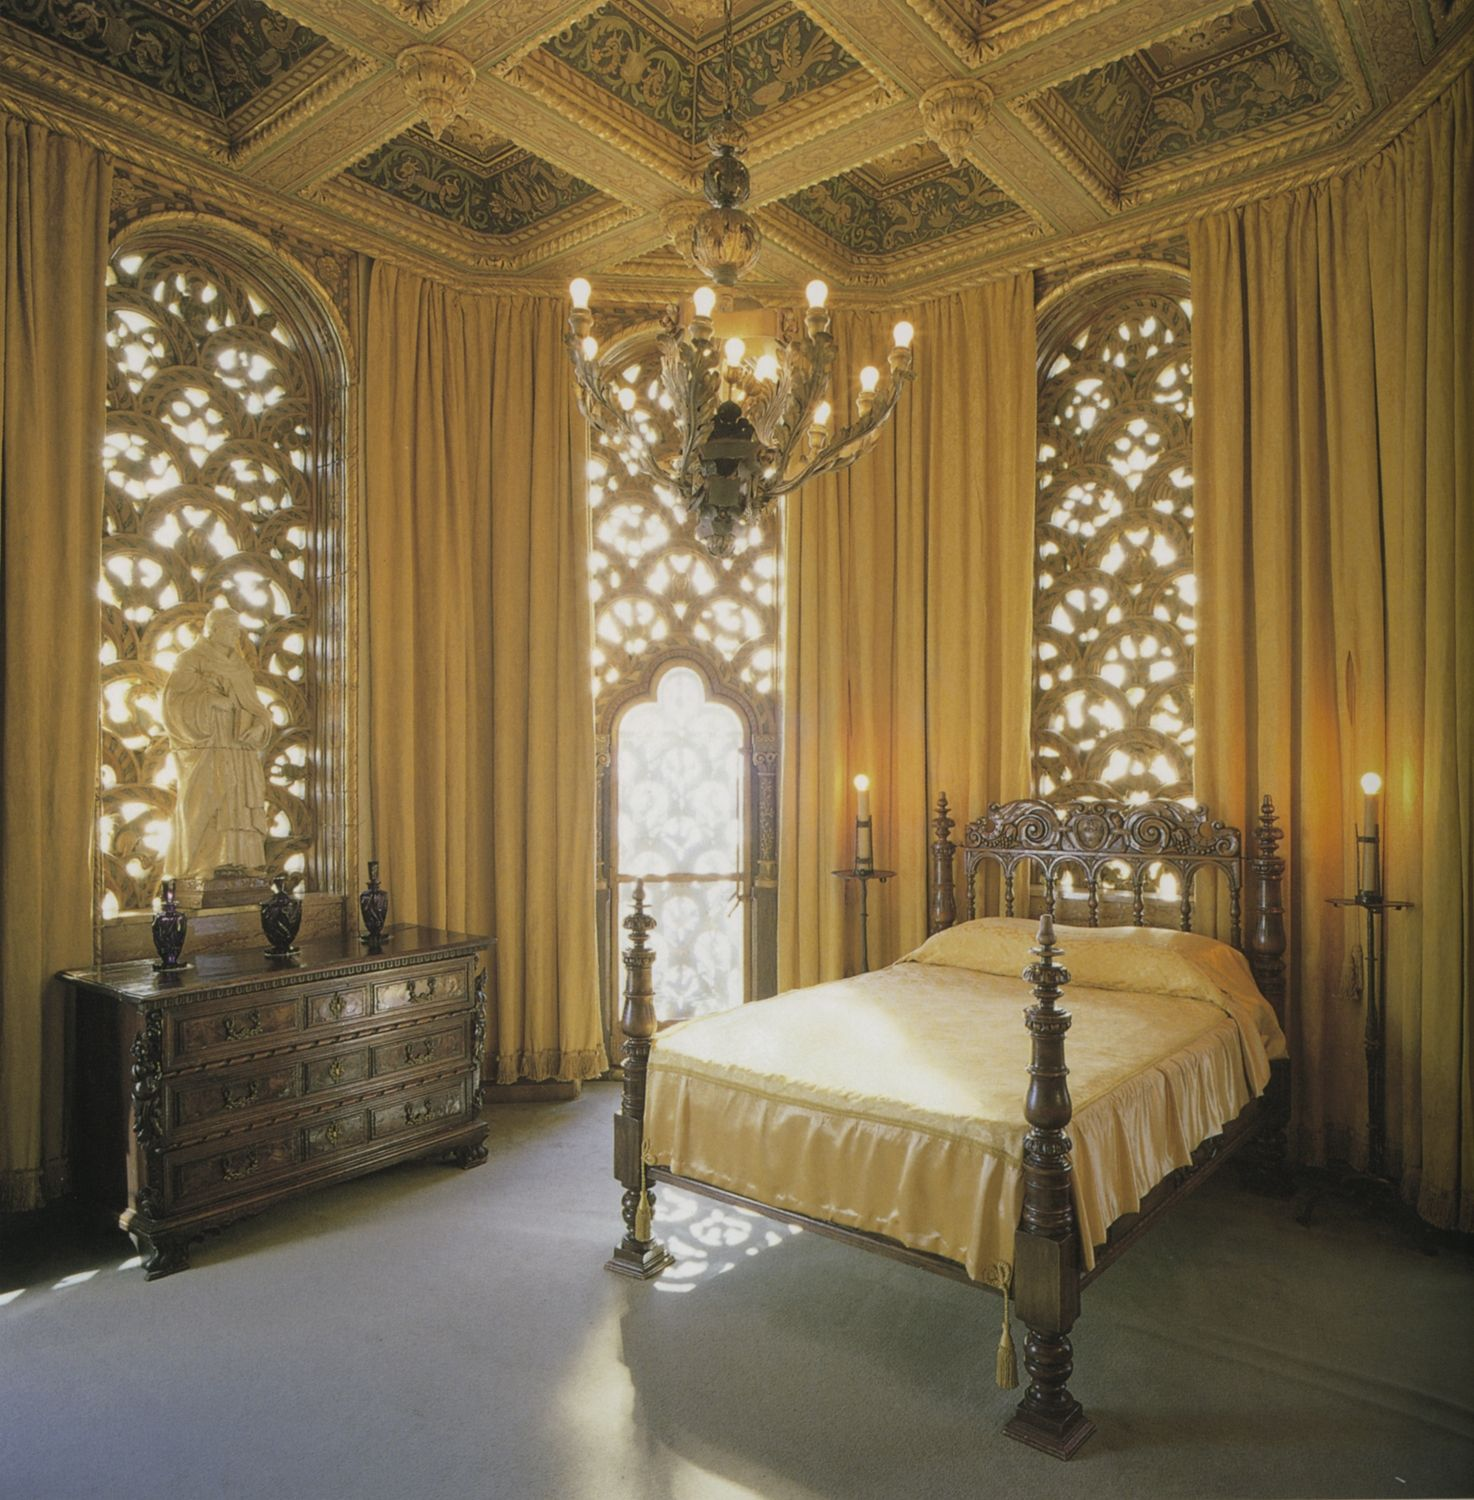 Castle master bedroom - Tower Bedroom Hearst Corporation Corporation Corporation Castle